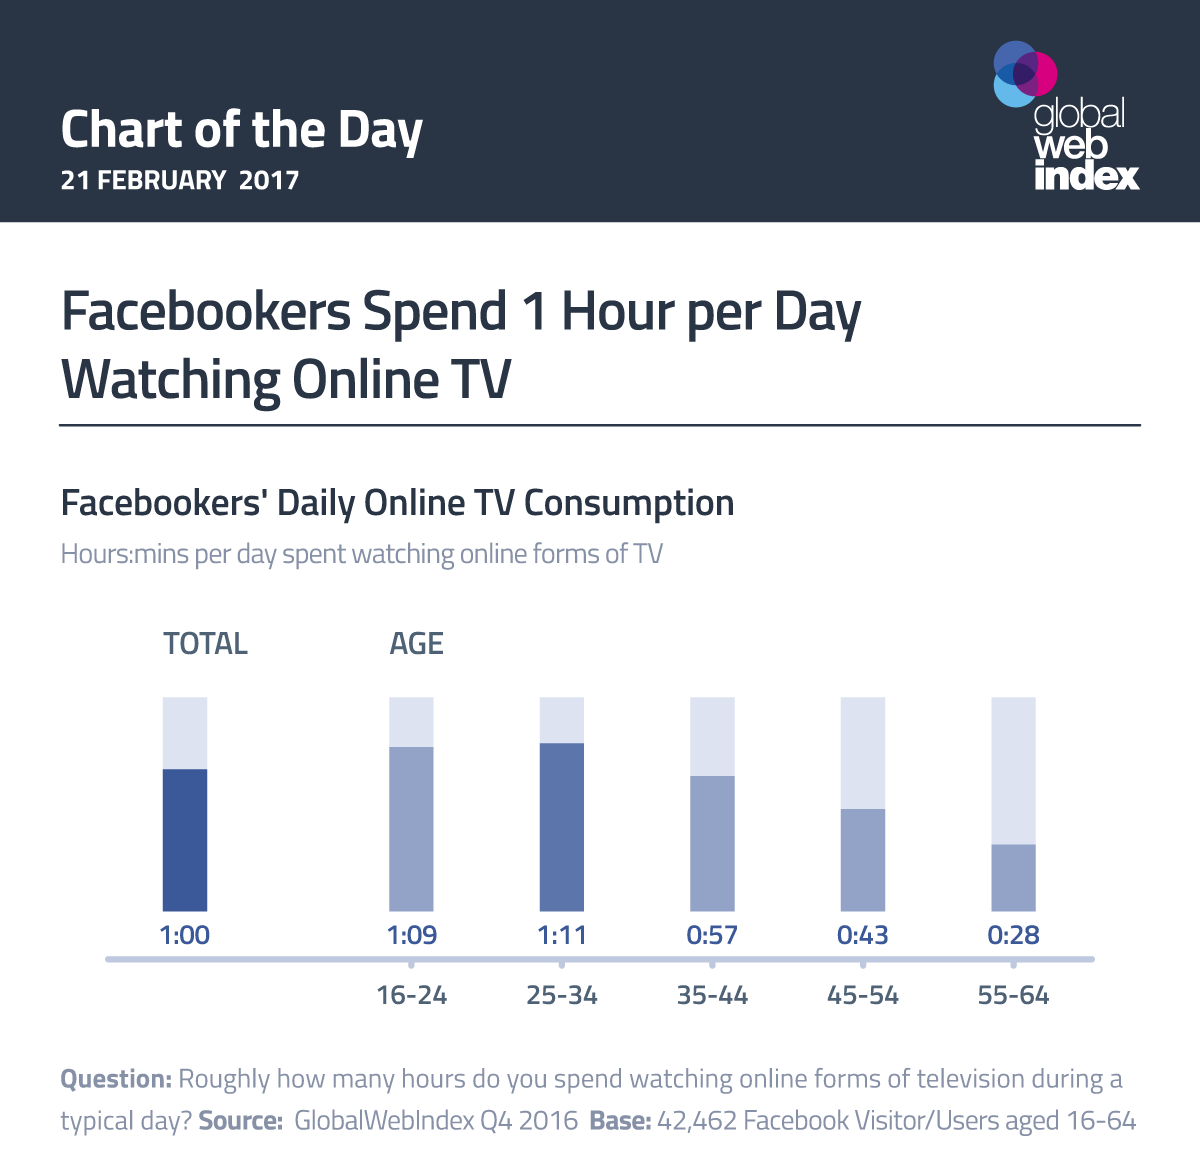 Facebookers Spend 1 Hour per Day Watching Online TV